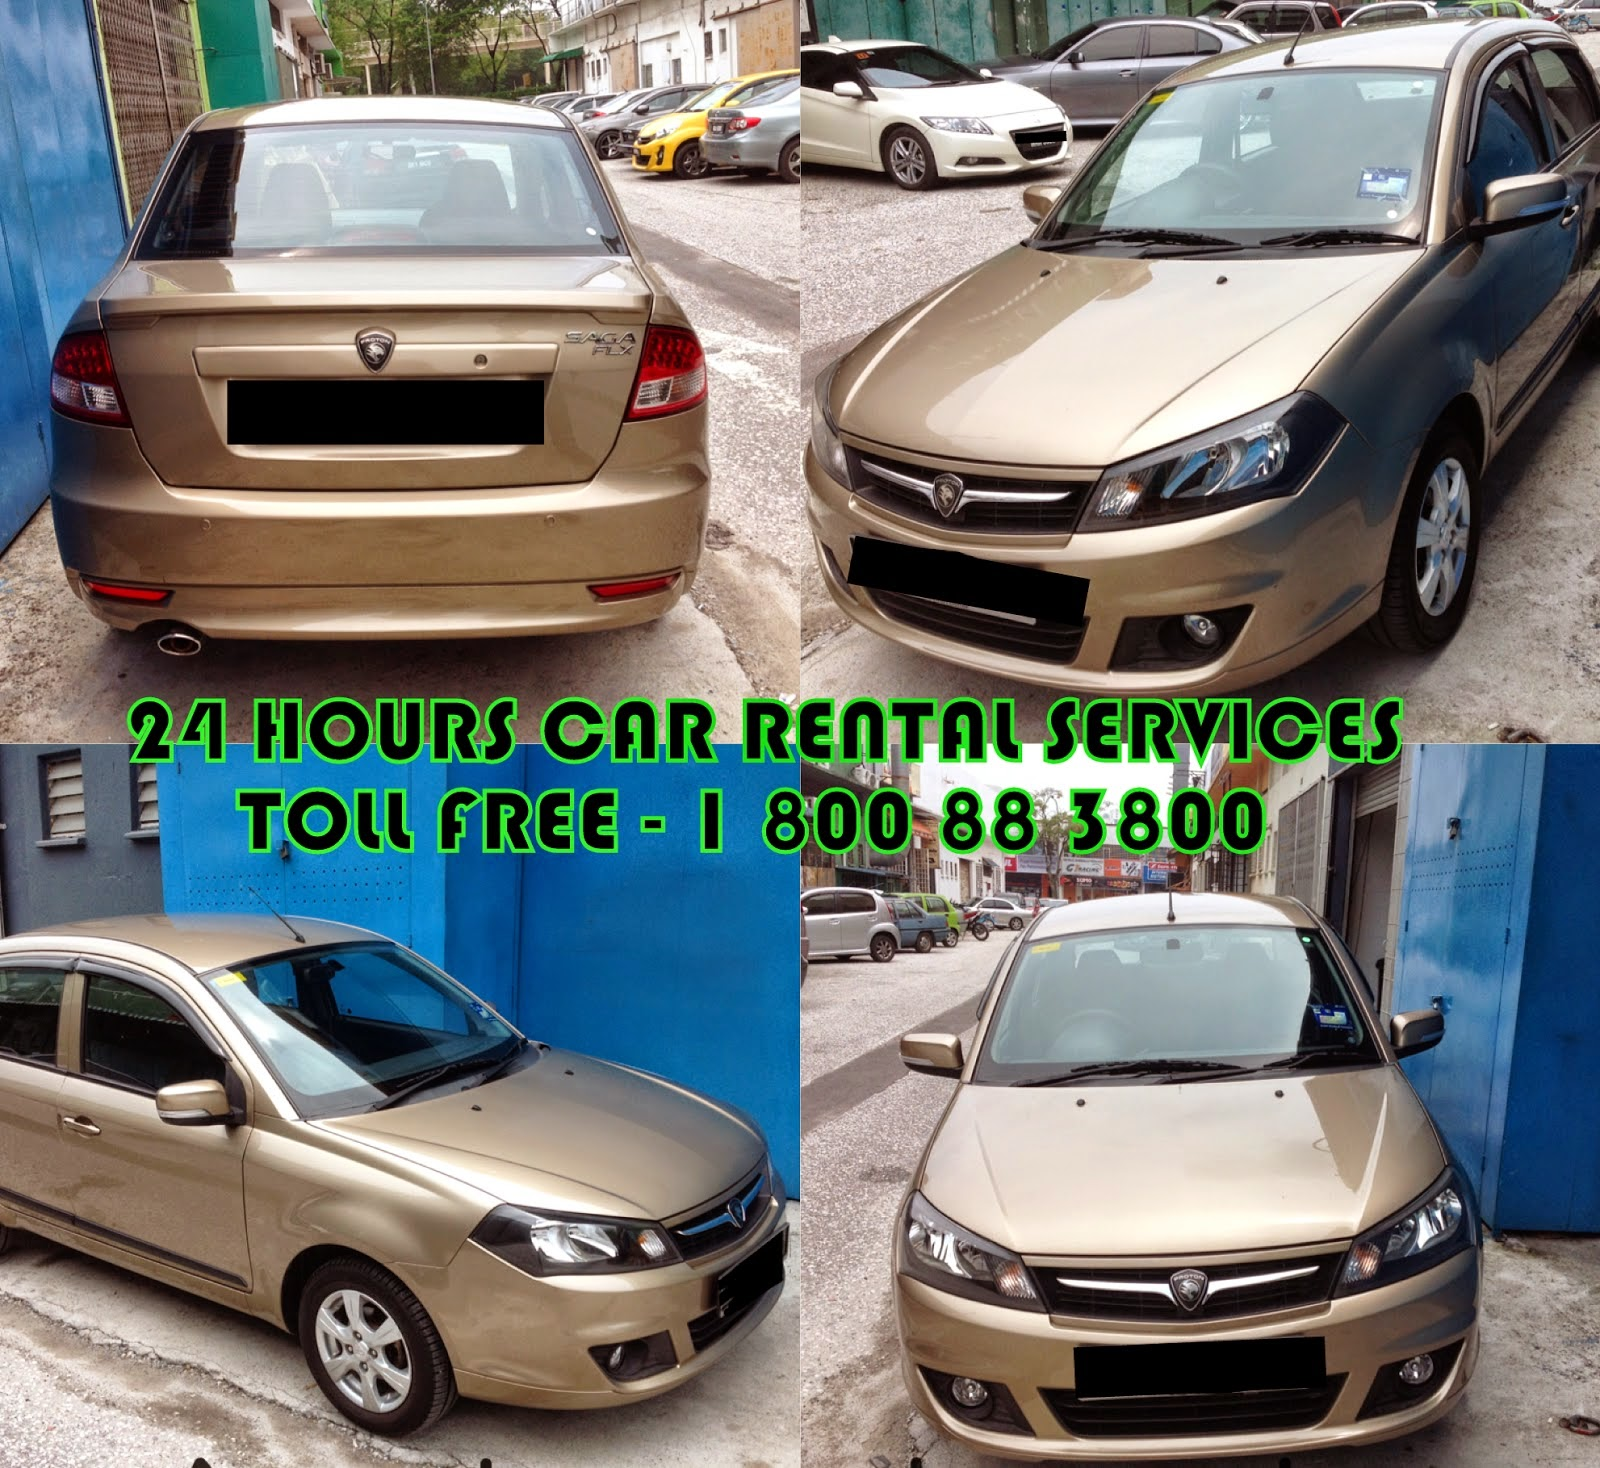 Amanah Auto Assist 24 Hours Car Rental